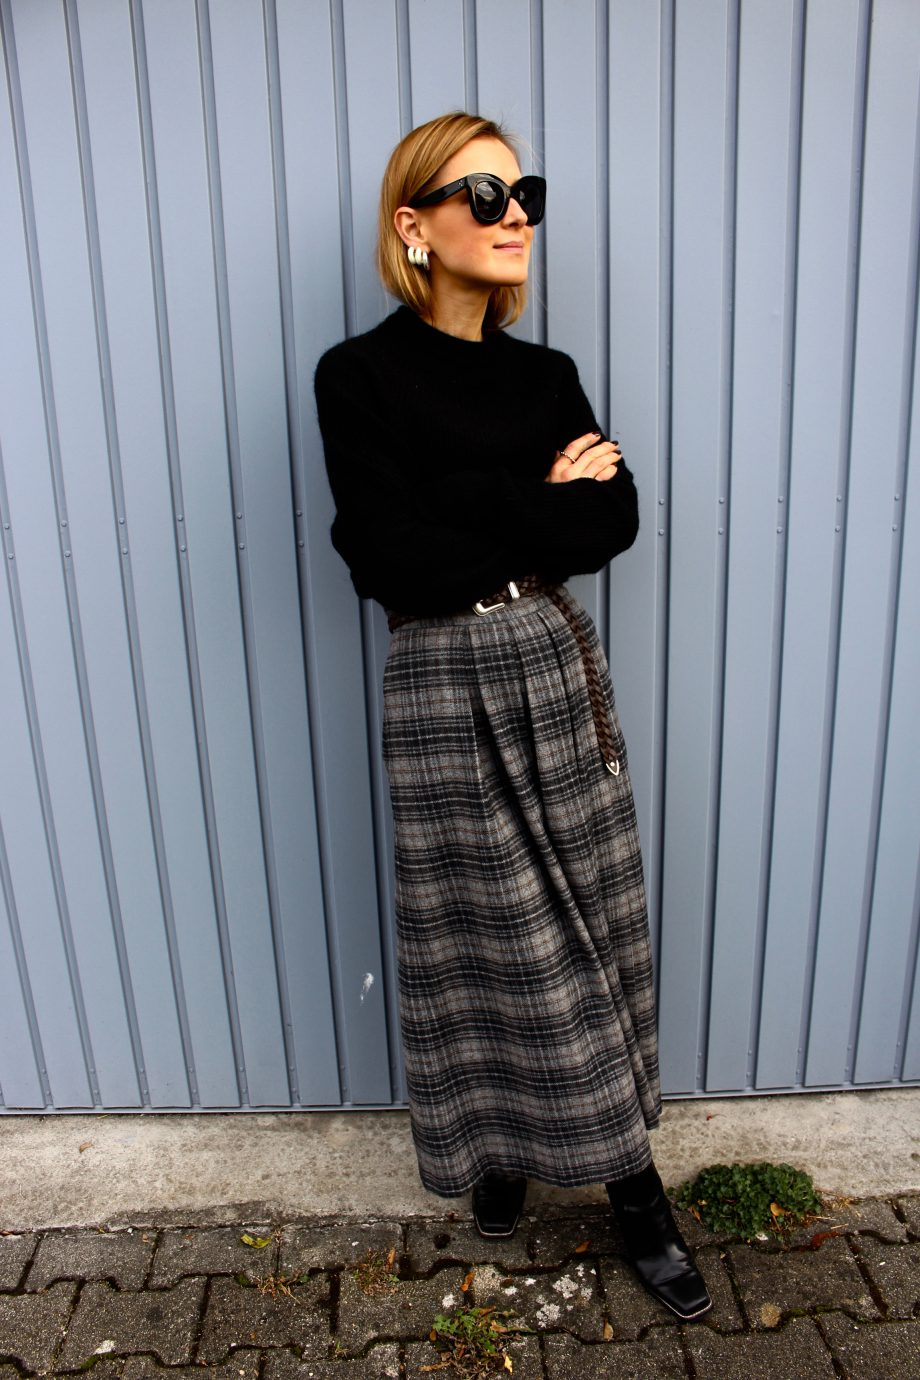 The Massimo Dutti Winter Capsule Skirt | 10.11.2018